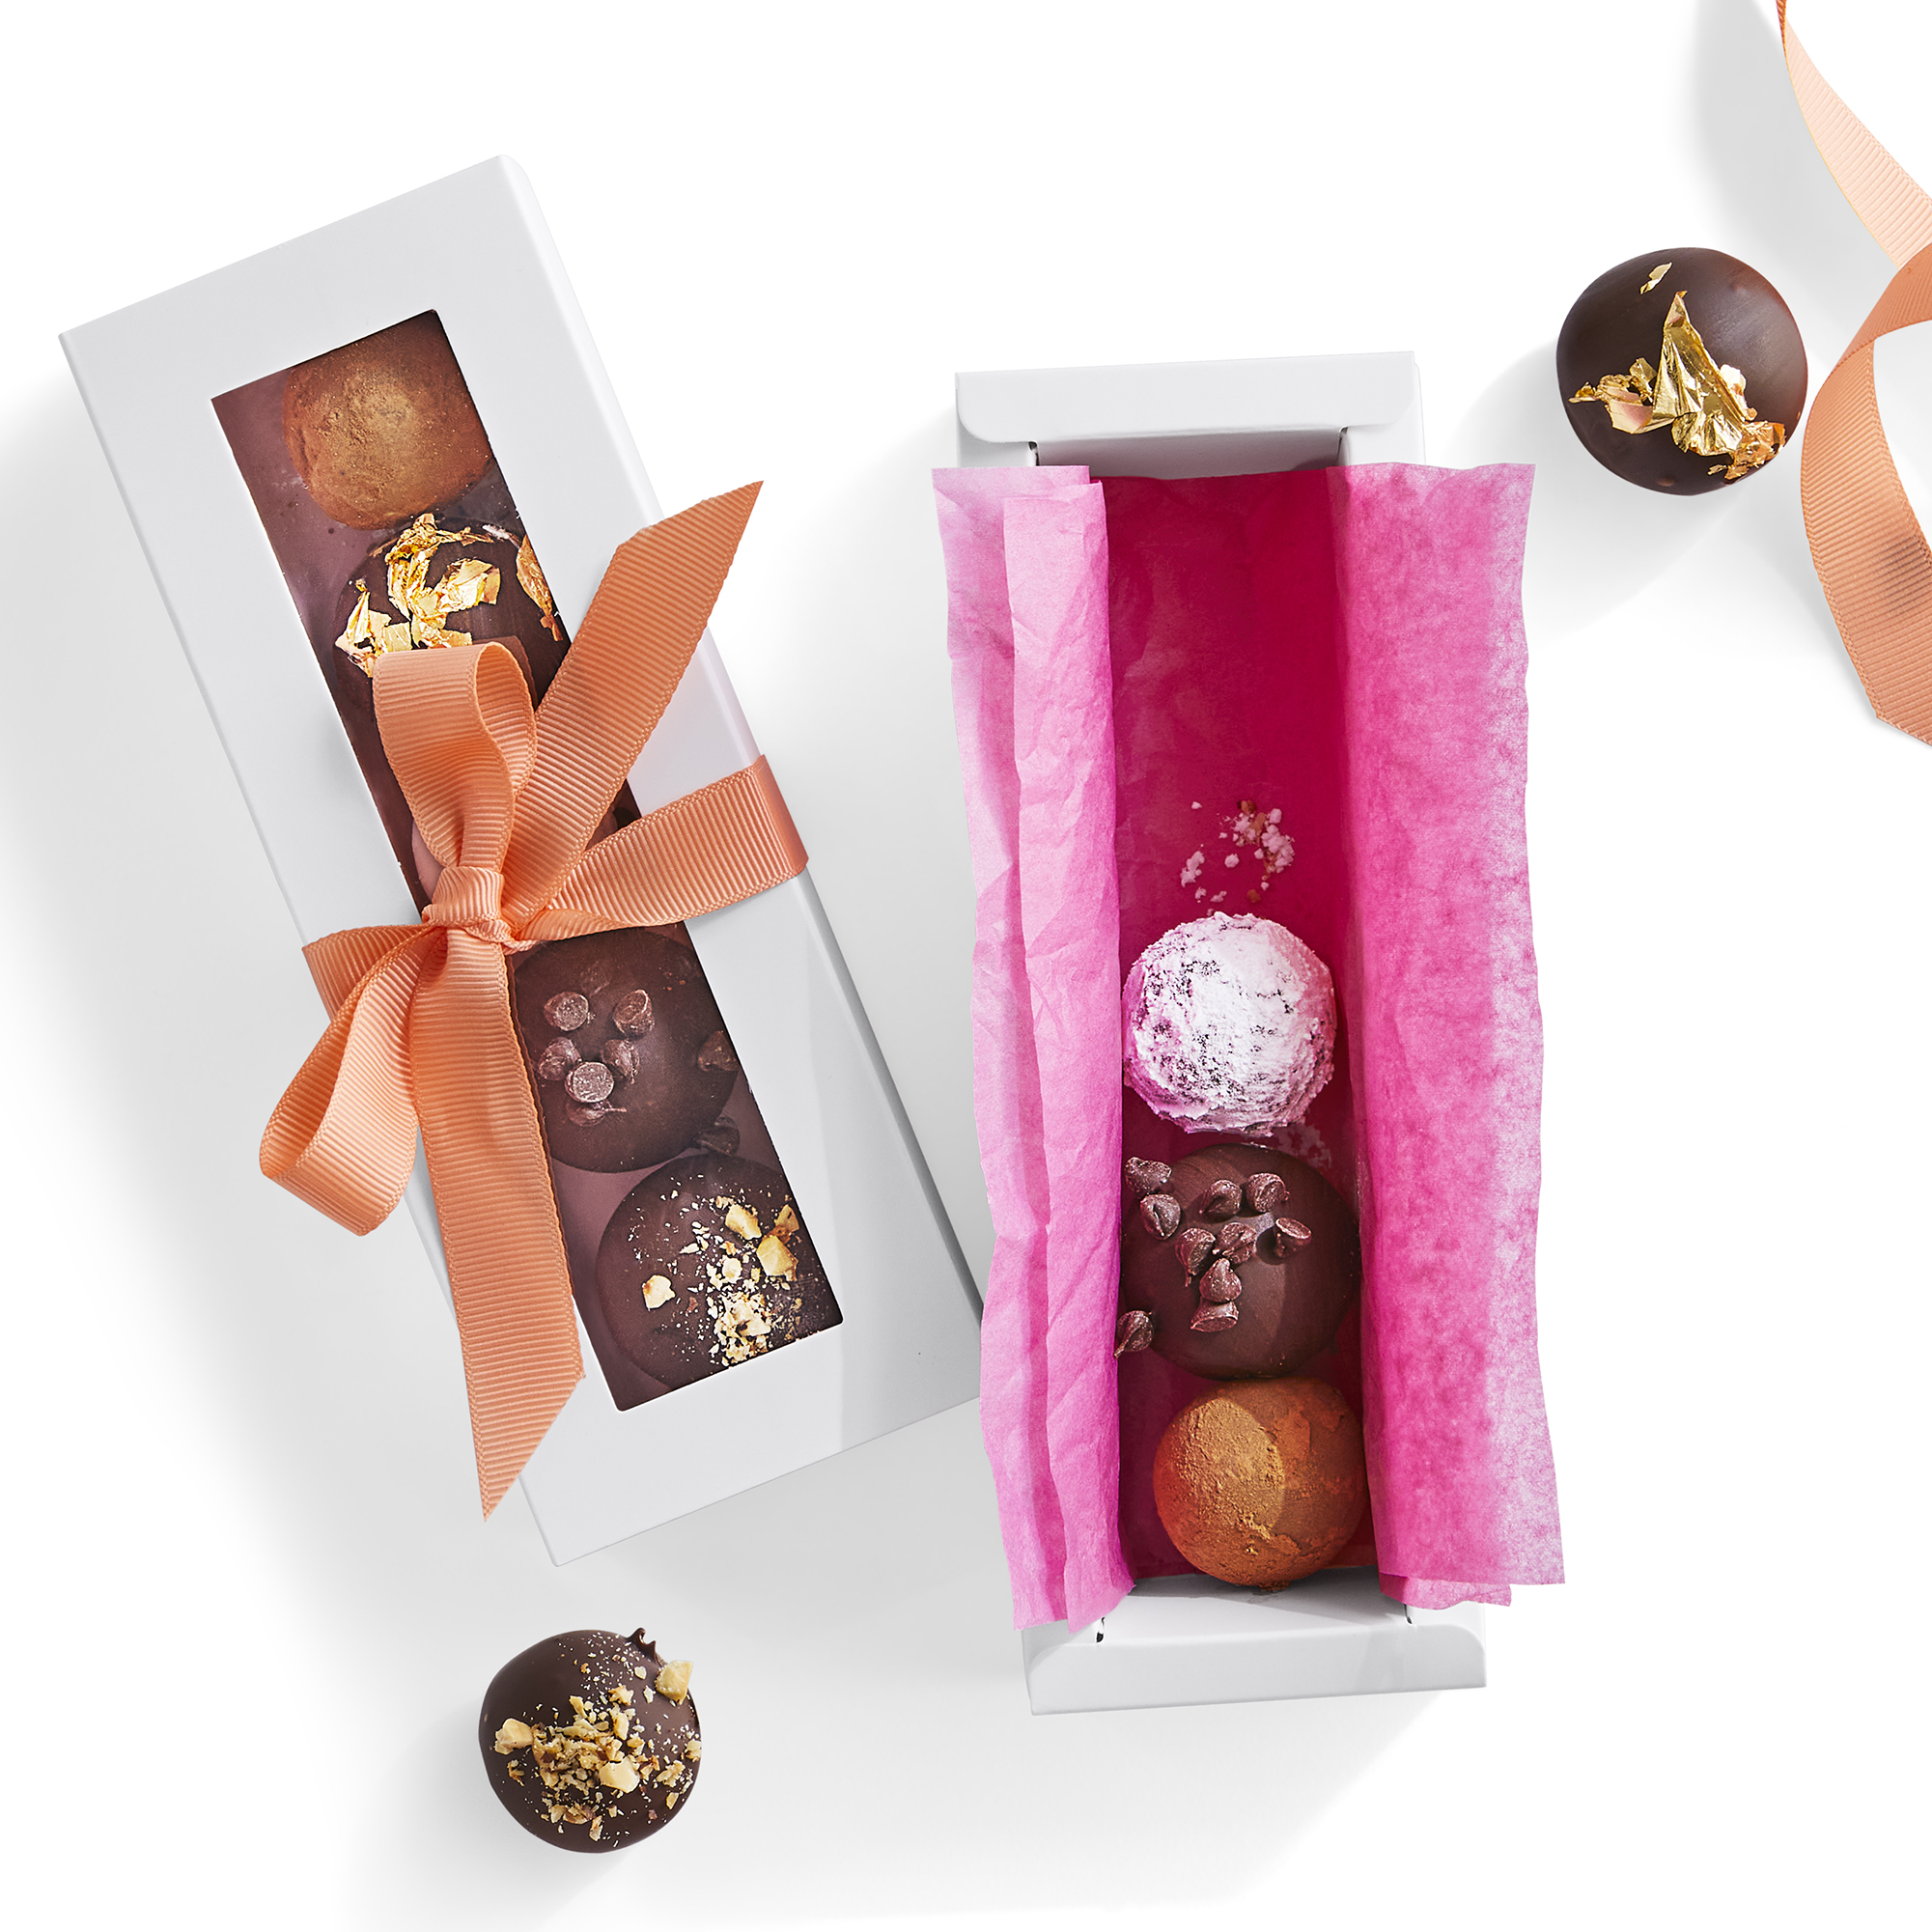 Two small boxed packaged with Twilight Dark Chocolate truffles, for gifting